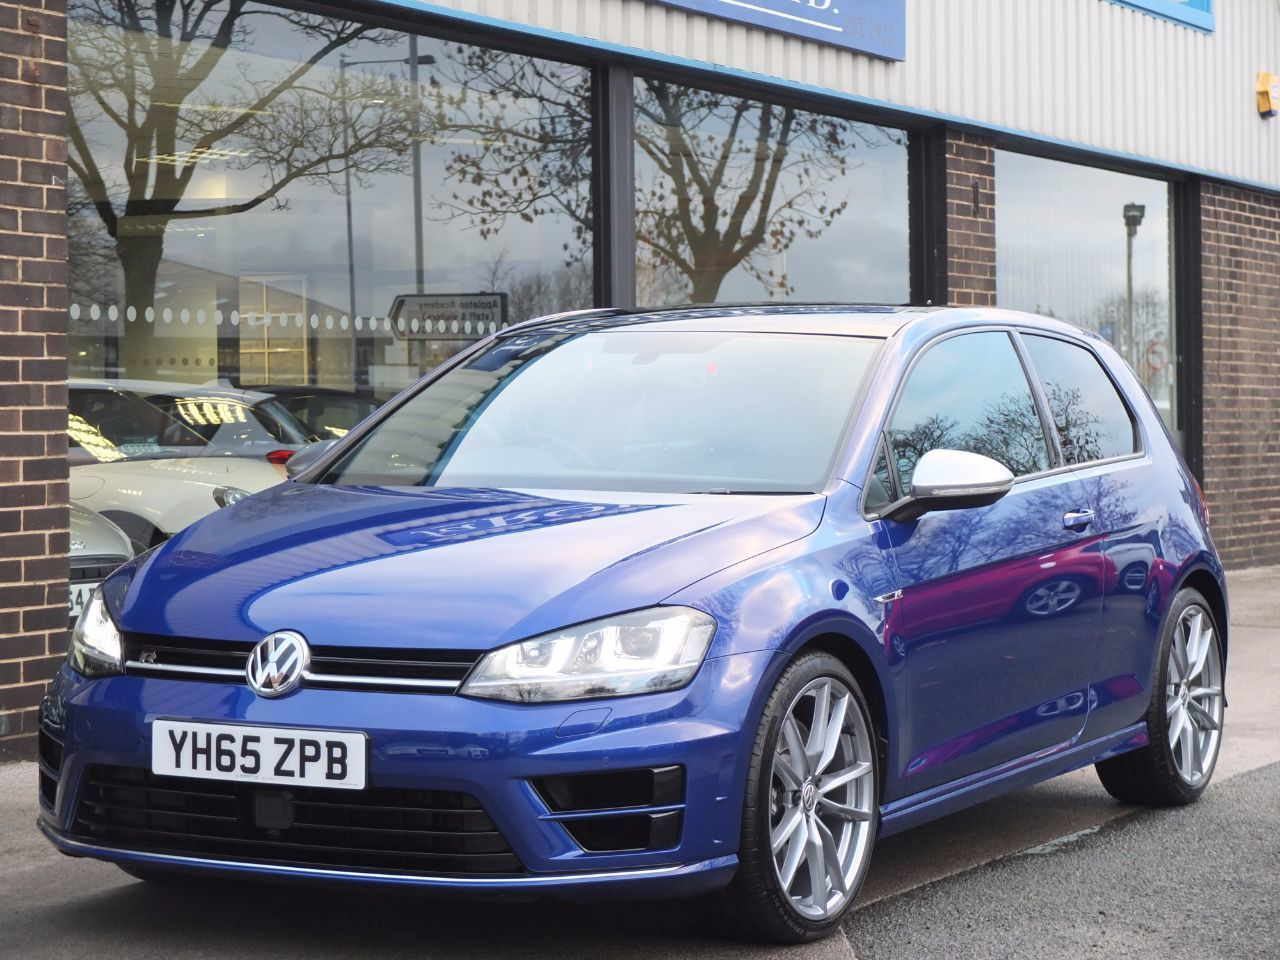 Volkswagen Golf 2.0 TSI 300ps R 4MOTION 3 door Hatchback Petrol Lapiz Blue MetallicVolkswagen Golf 2.0 TSI 300ps R 4MOTION 3 door Hatchback Petrol Lapiz Blue Metallic at fa Roper Ltd Bradford